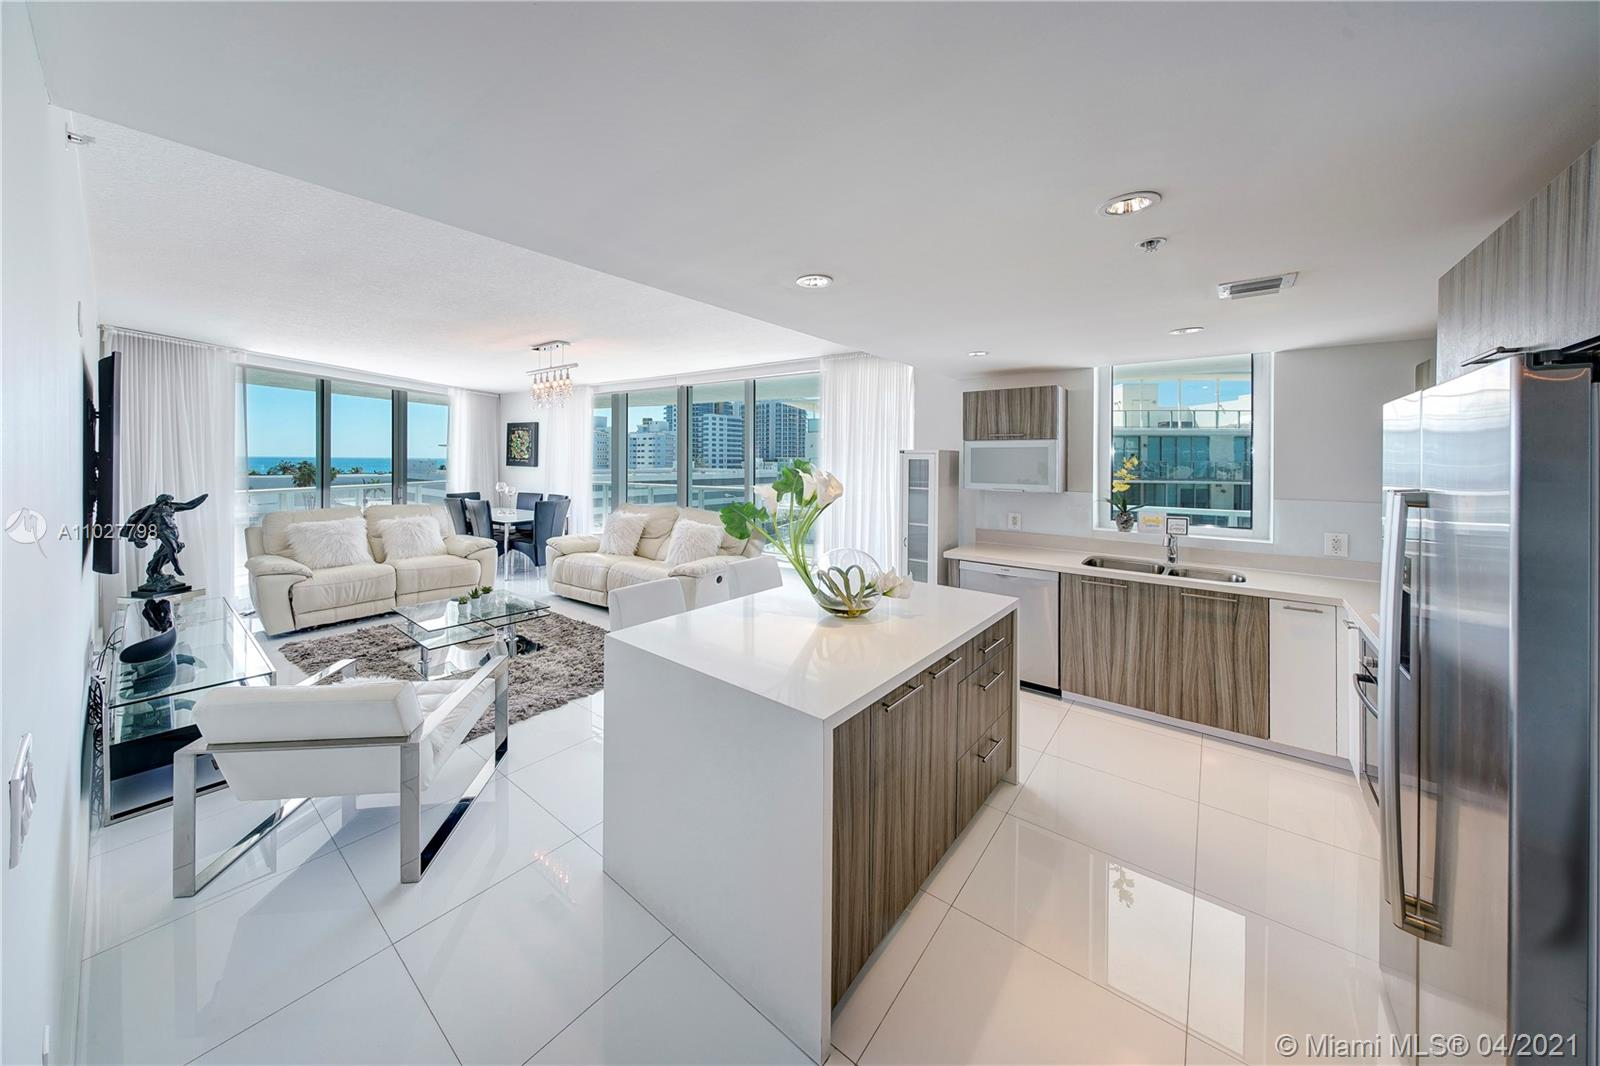 Live on the Aegean Sea of Miami Beach. Experience the unobstructed Sunrise and Sunset in this Furnished 3 Bedroom/ 2.5 bathroom corner unit. Enjoy this visually stunning condo with Ocean, Intracoastal, Bay, and Skyline views. Floor to ceiling windows highlight the 180 degree views and wide balconies. The split floorplan provides the privacy you desire. Eden House is a full-service building in the heart of Miami Beach. Spend the day sunning on property or head to the beach and don't forget to check out the nearby world-renowned restaurants.